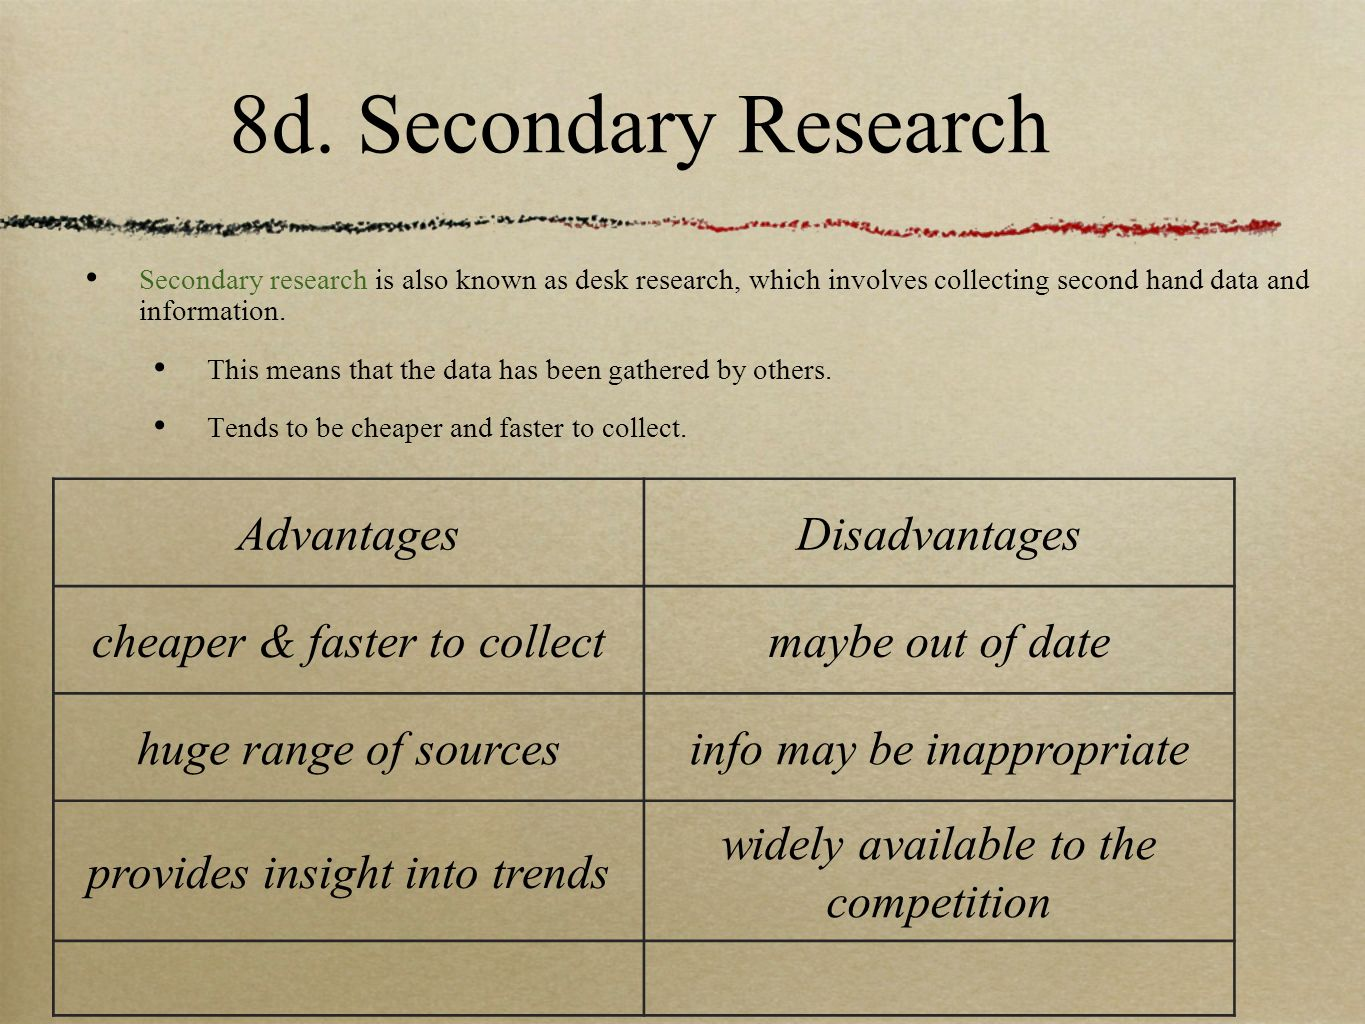 disadvantages of secondary research pdf